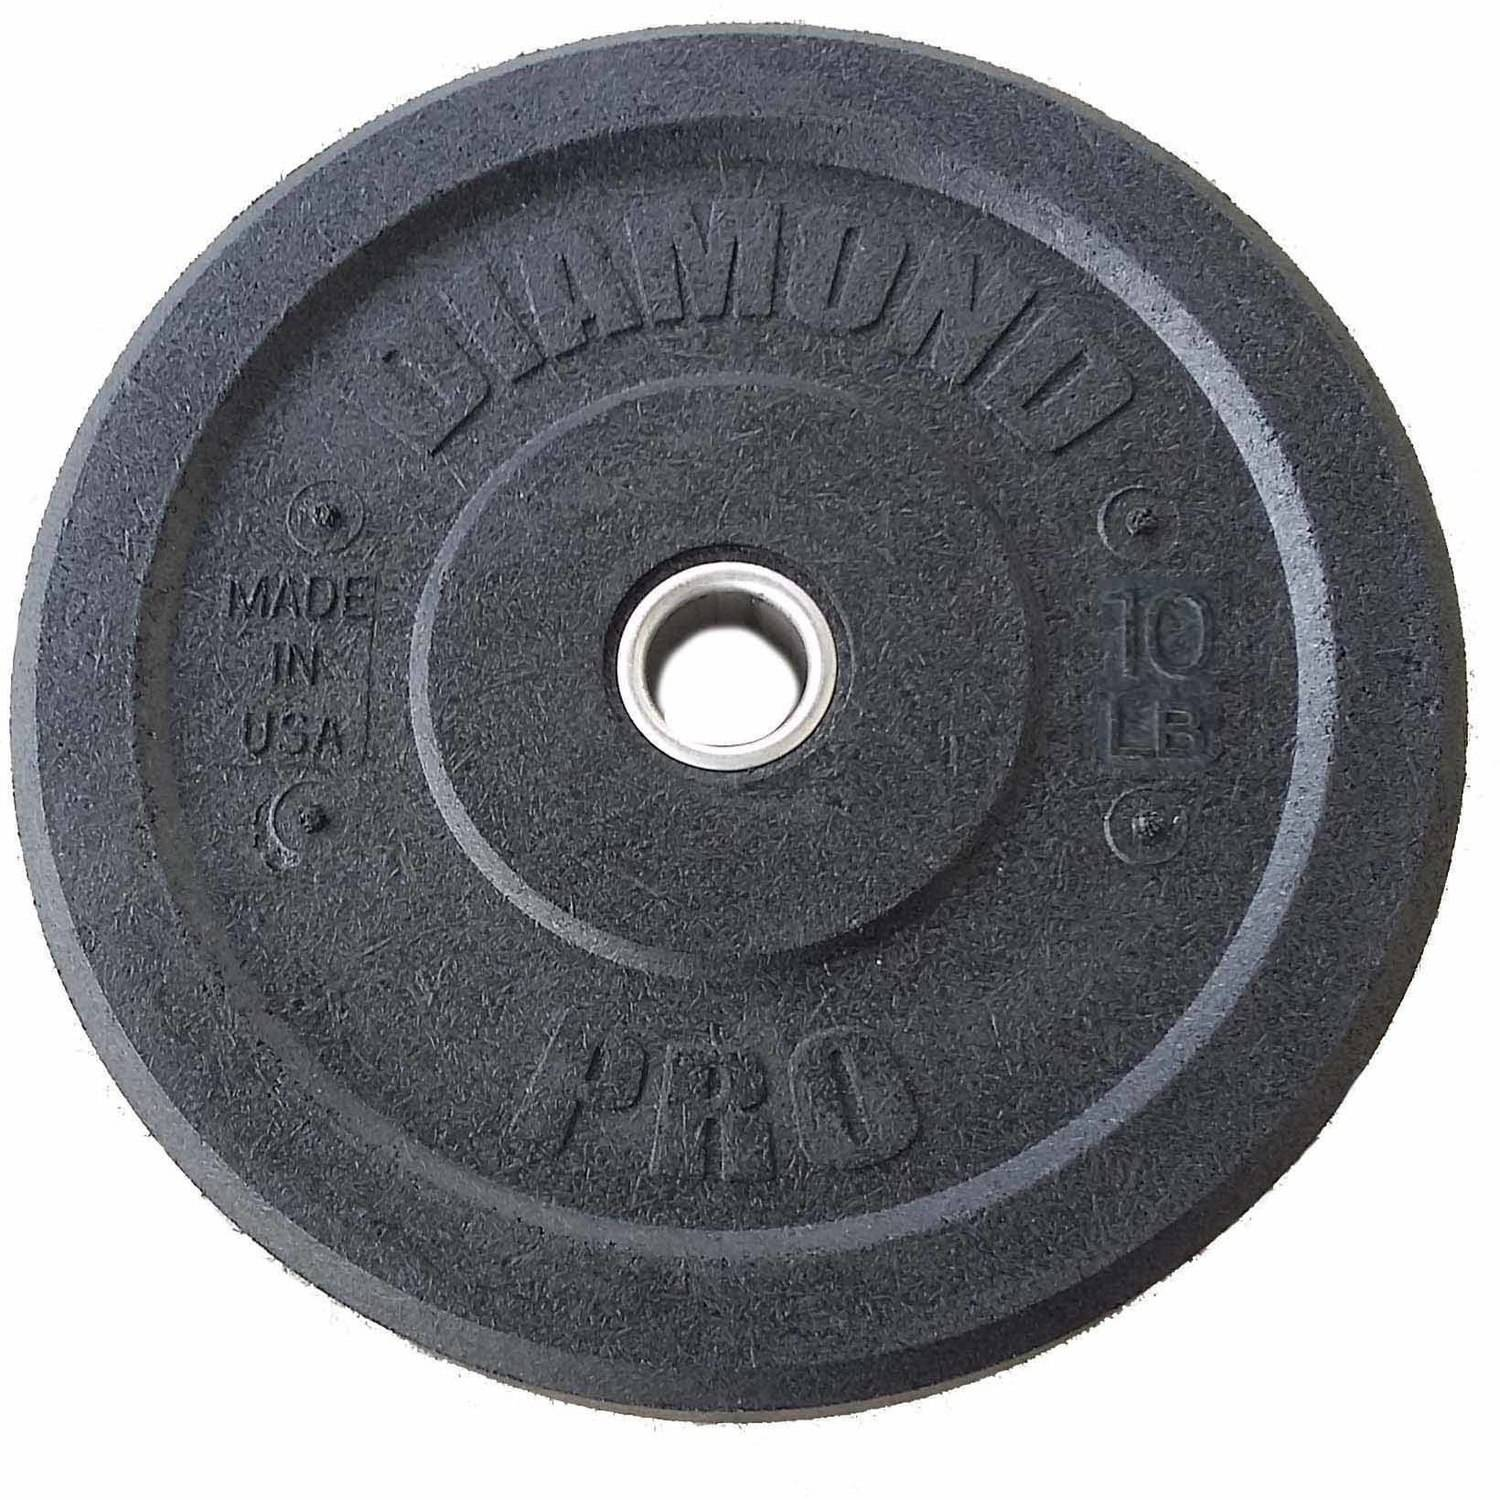 Diamond Pro 10 lb Crumb Bumper Plate Pair, workout routines for women to lose weight,beginning weight loss workout